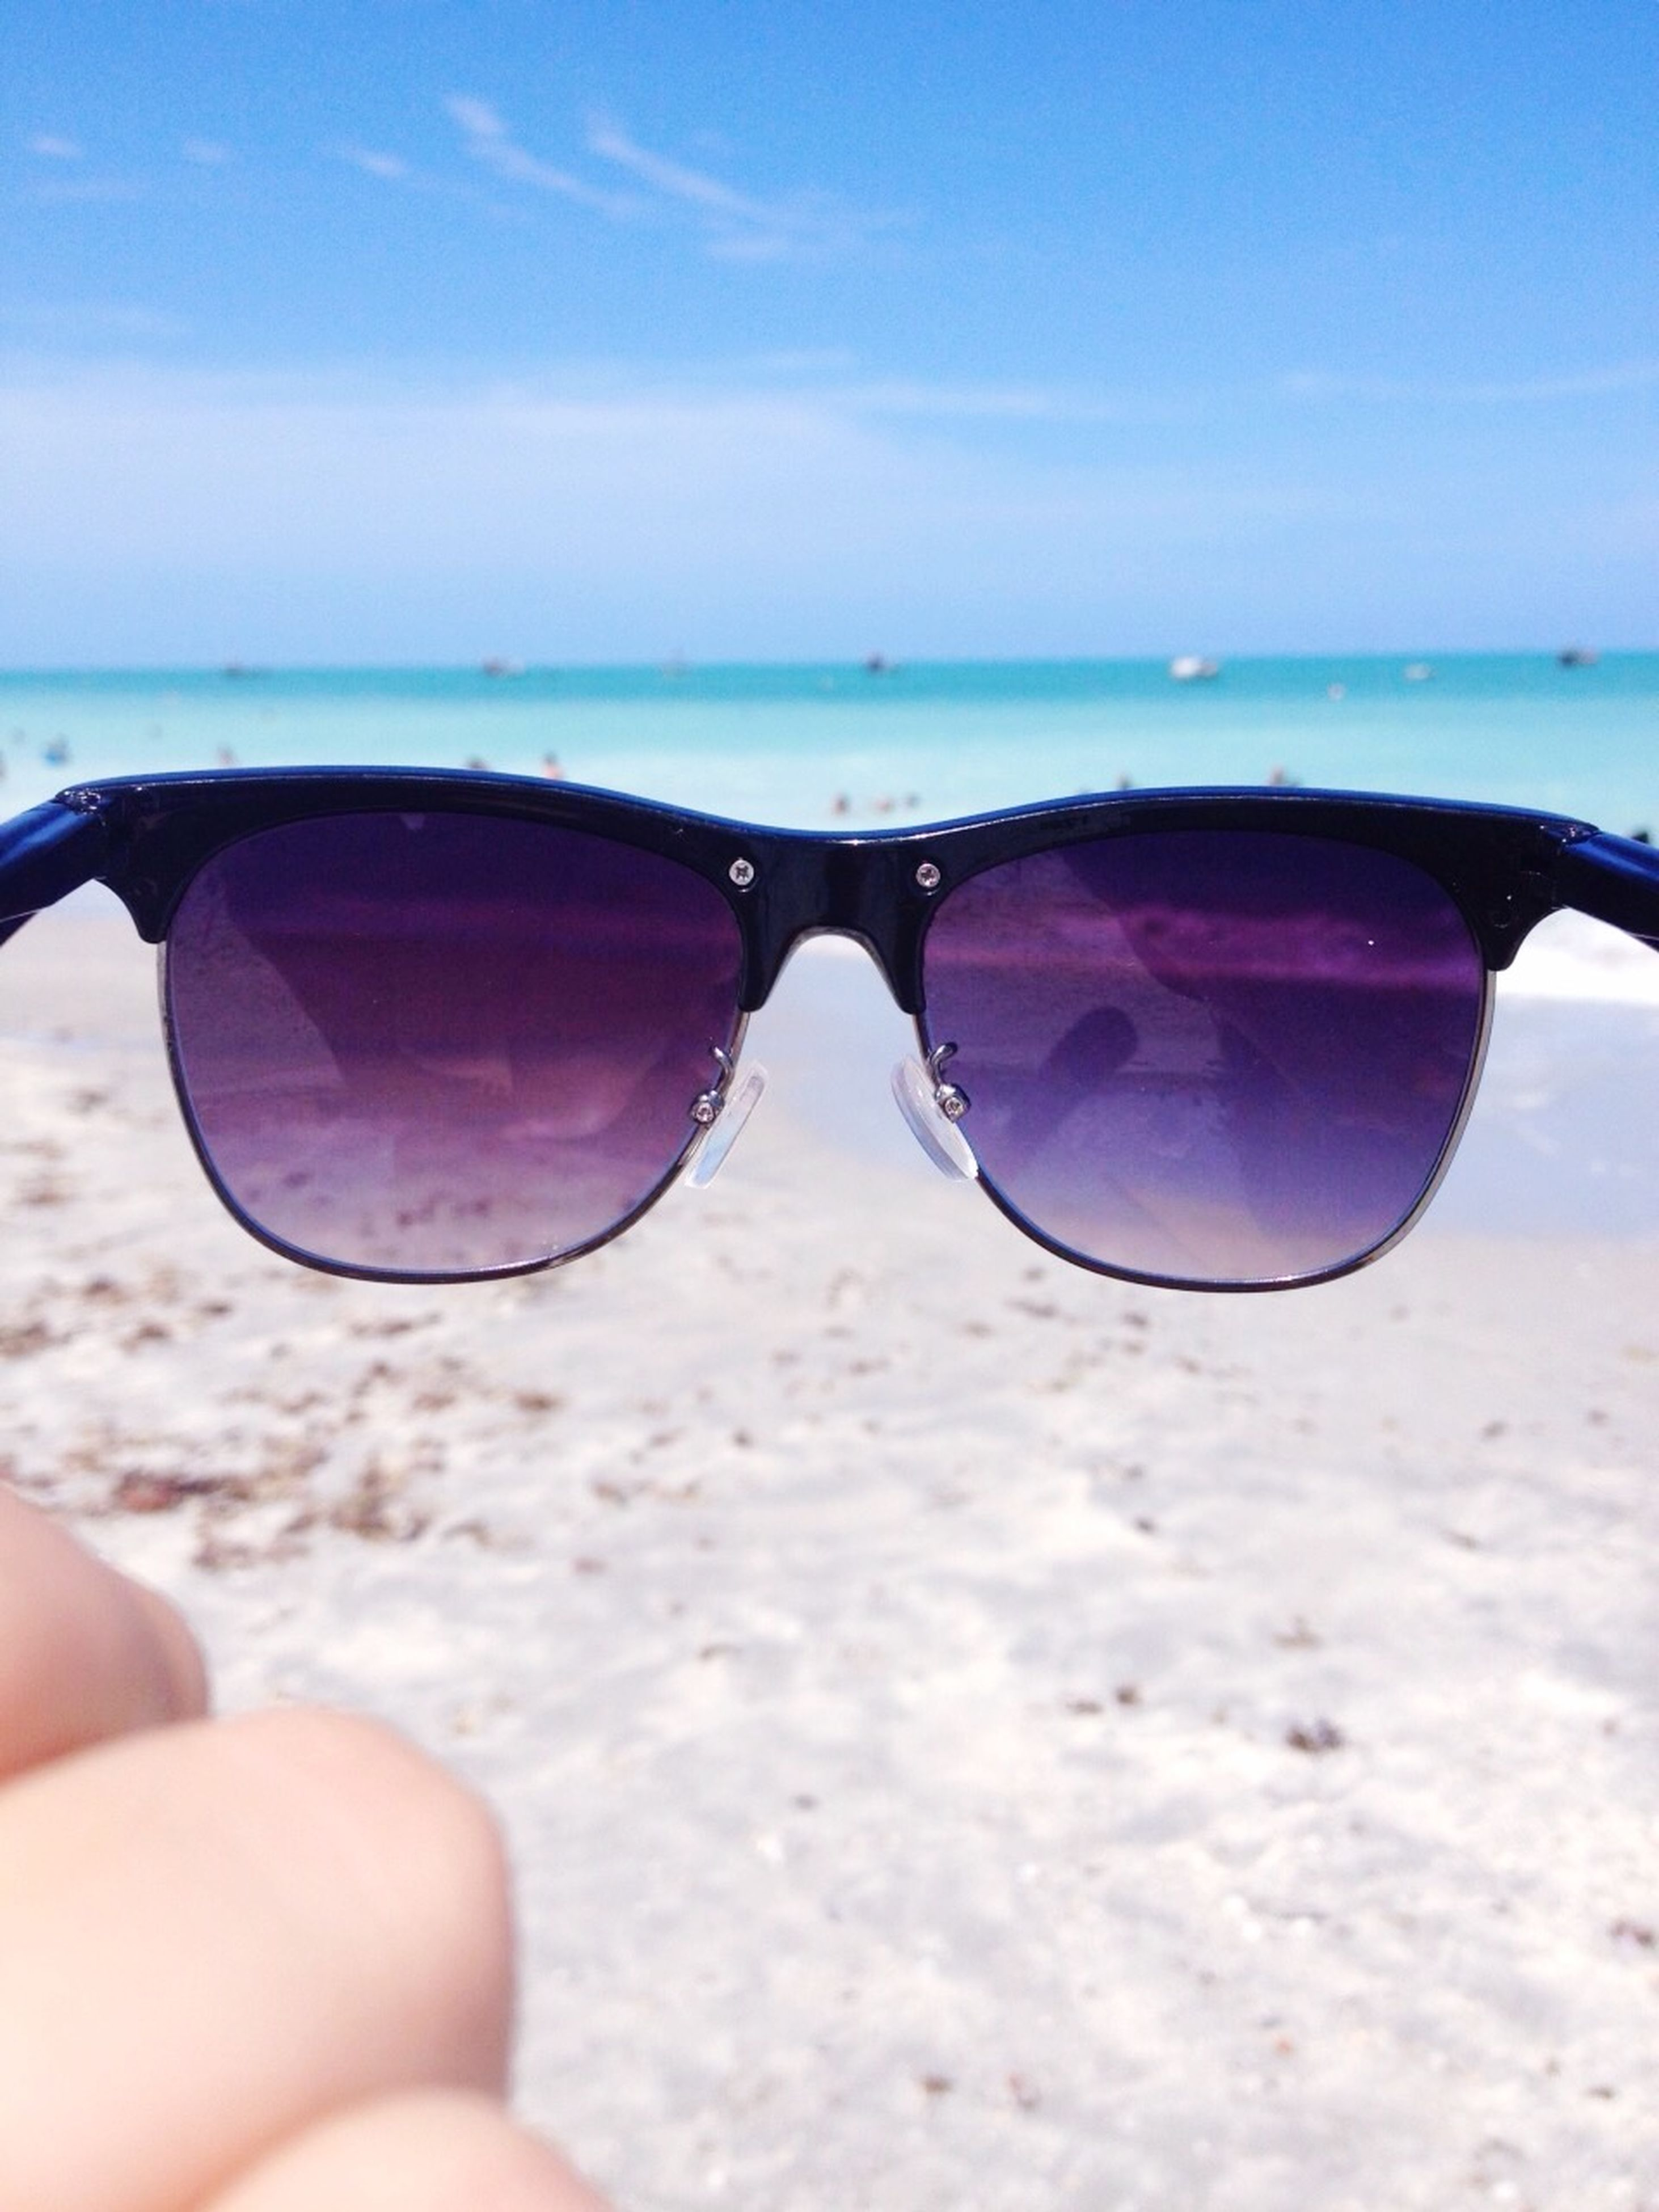 sea, beach, person, water, sky, part of, horizon over water, holding, cropped, sunglasses, close-up, shore, sand, blue, leisure activity, reflection, transparent